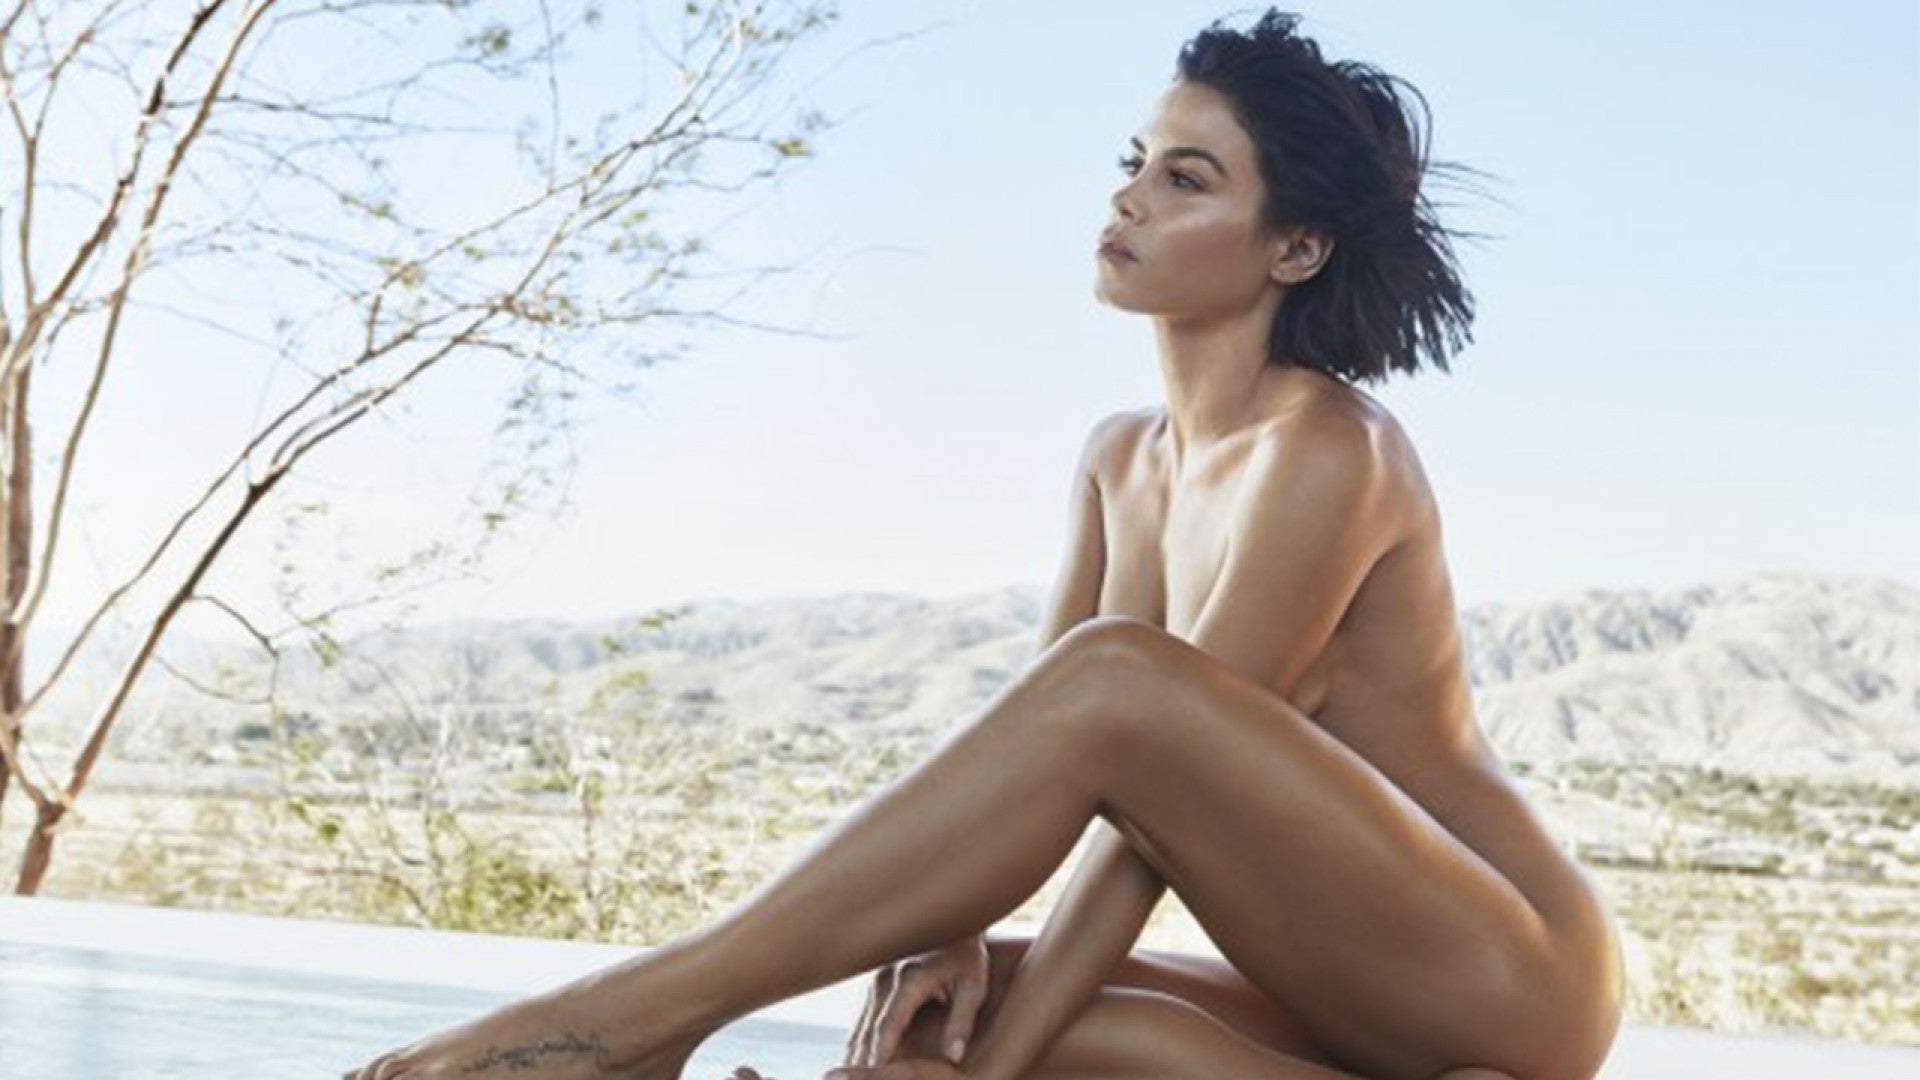 18 Year Old Jenna Porn jenna dewan poses nude as she talks about her transformation